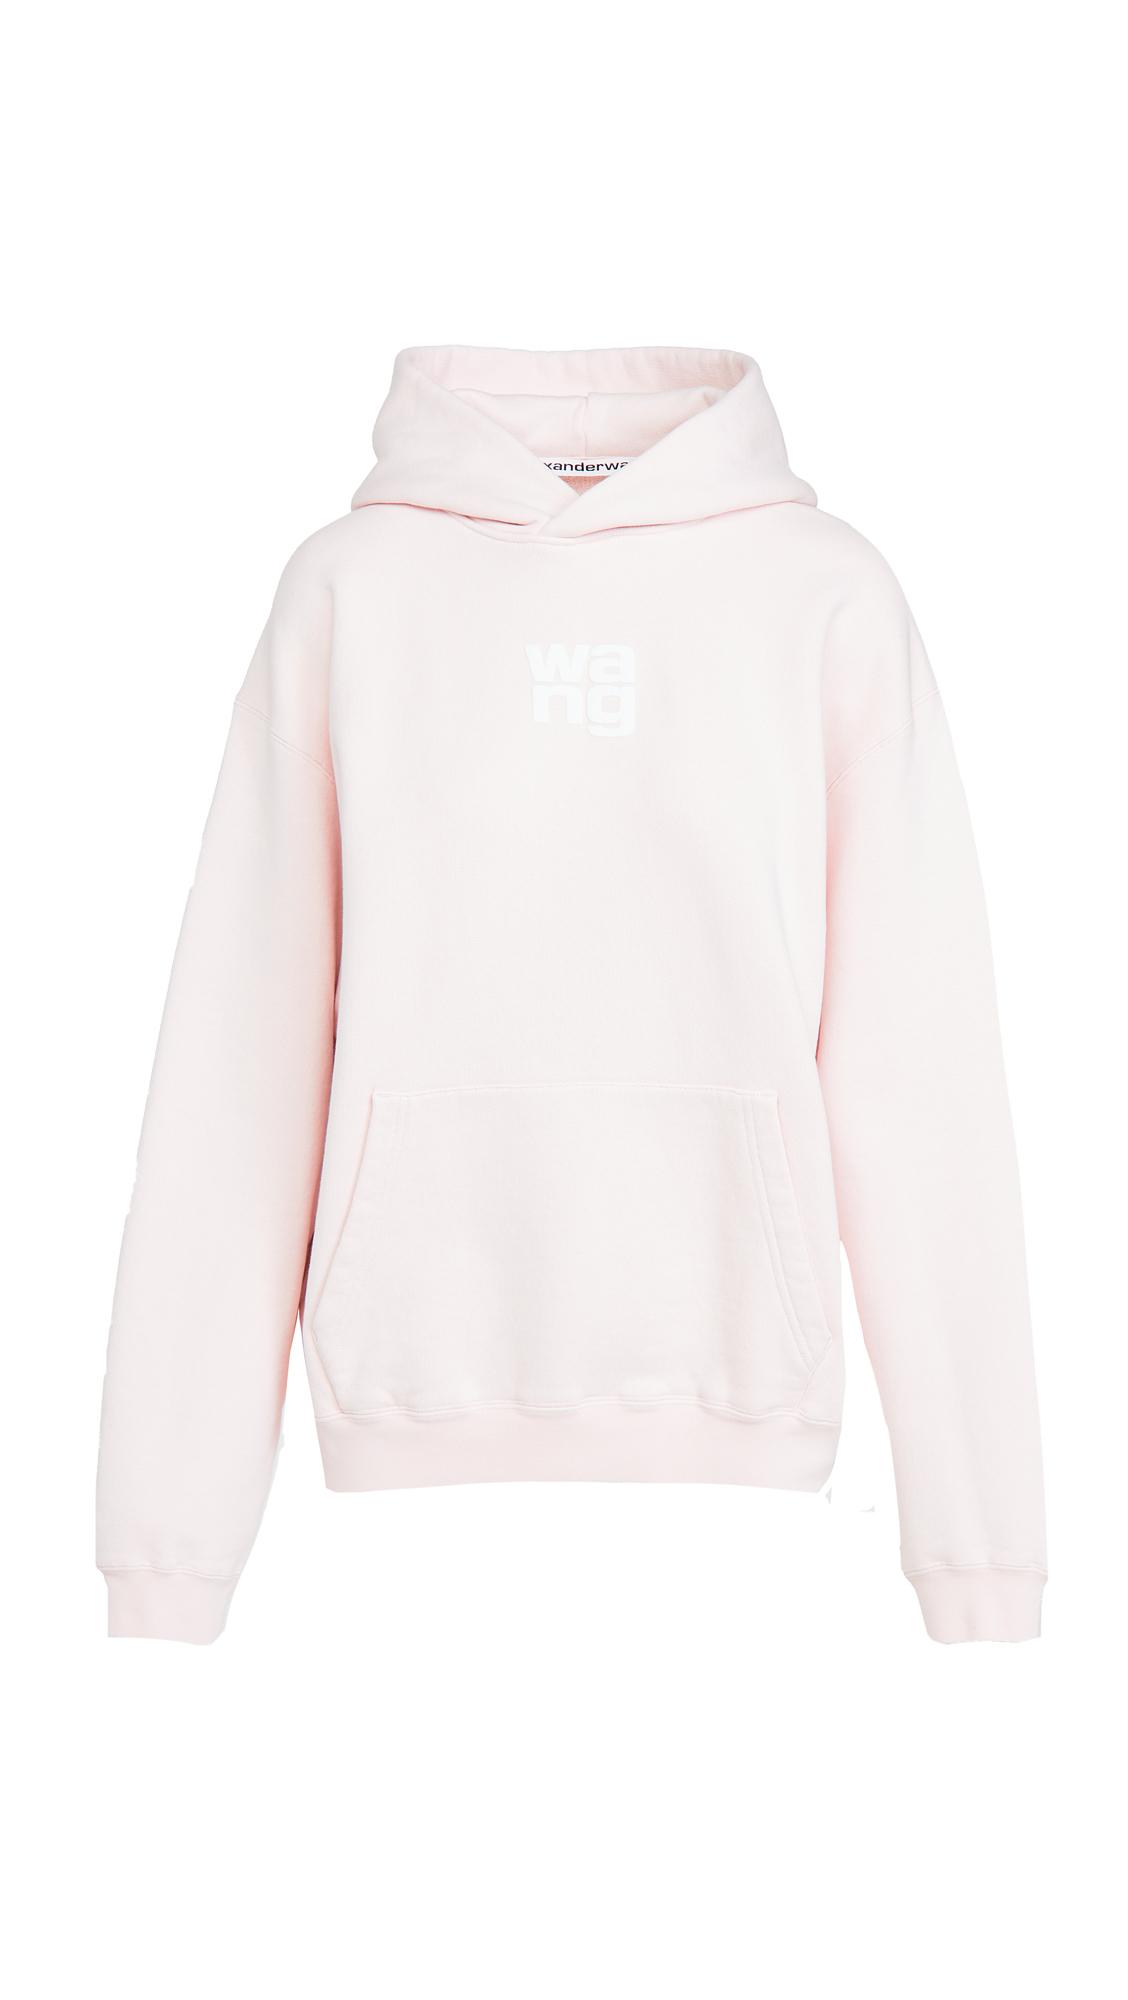 Alexander Wang Garment Washed Hoodie With Wang Puff Print